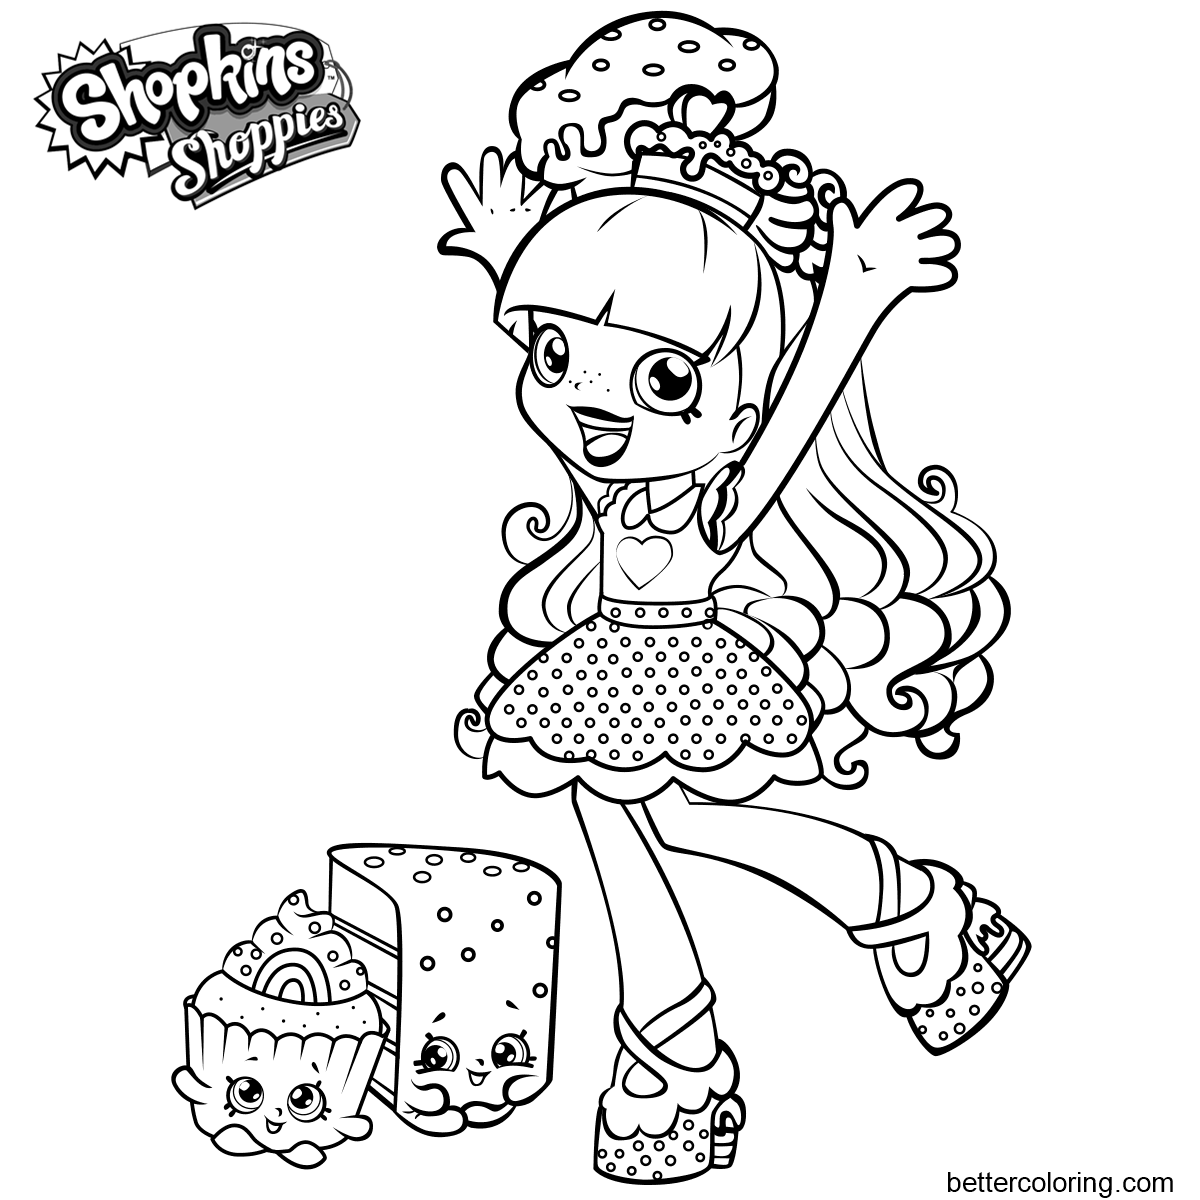 Shoppies Coloring Pages Rainbow